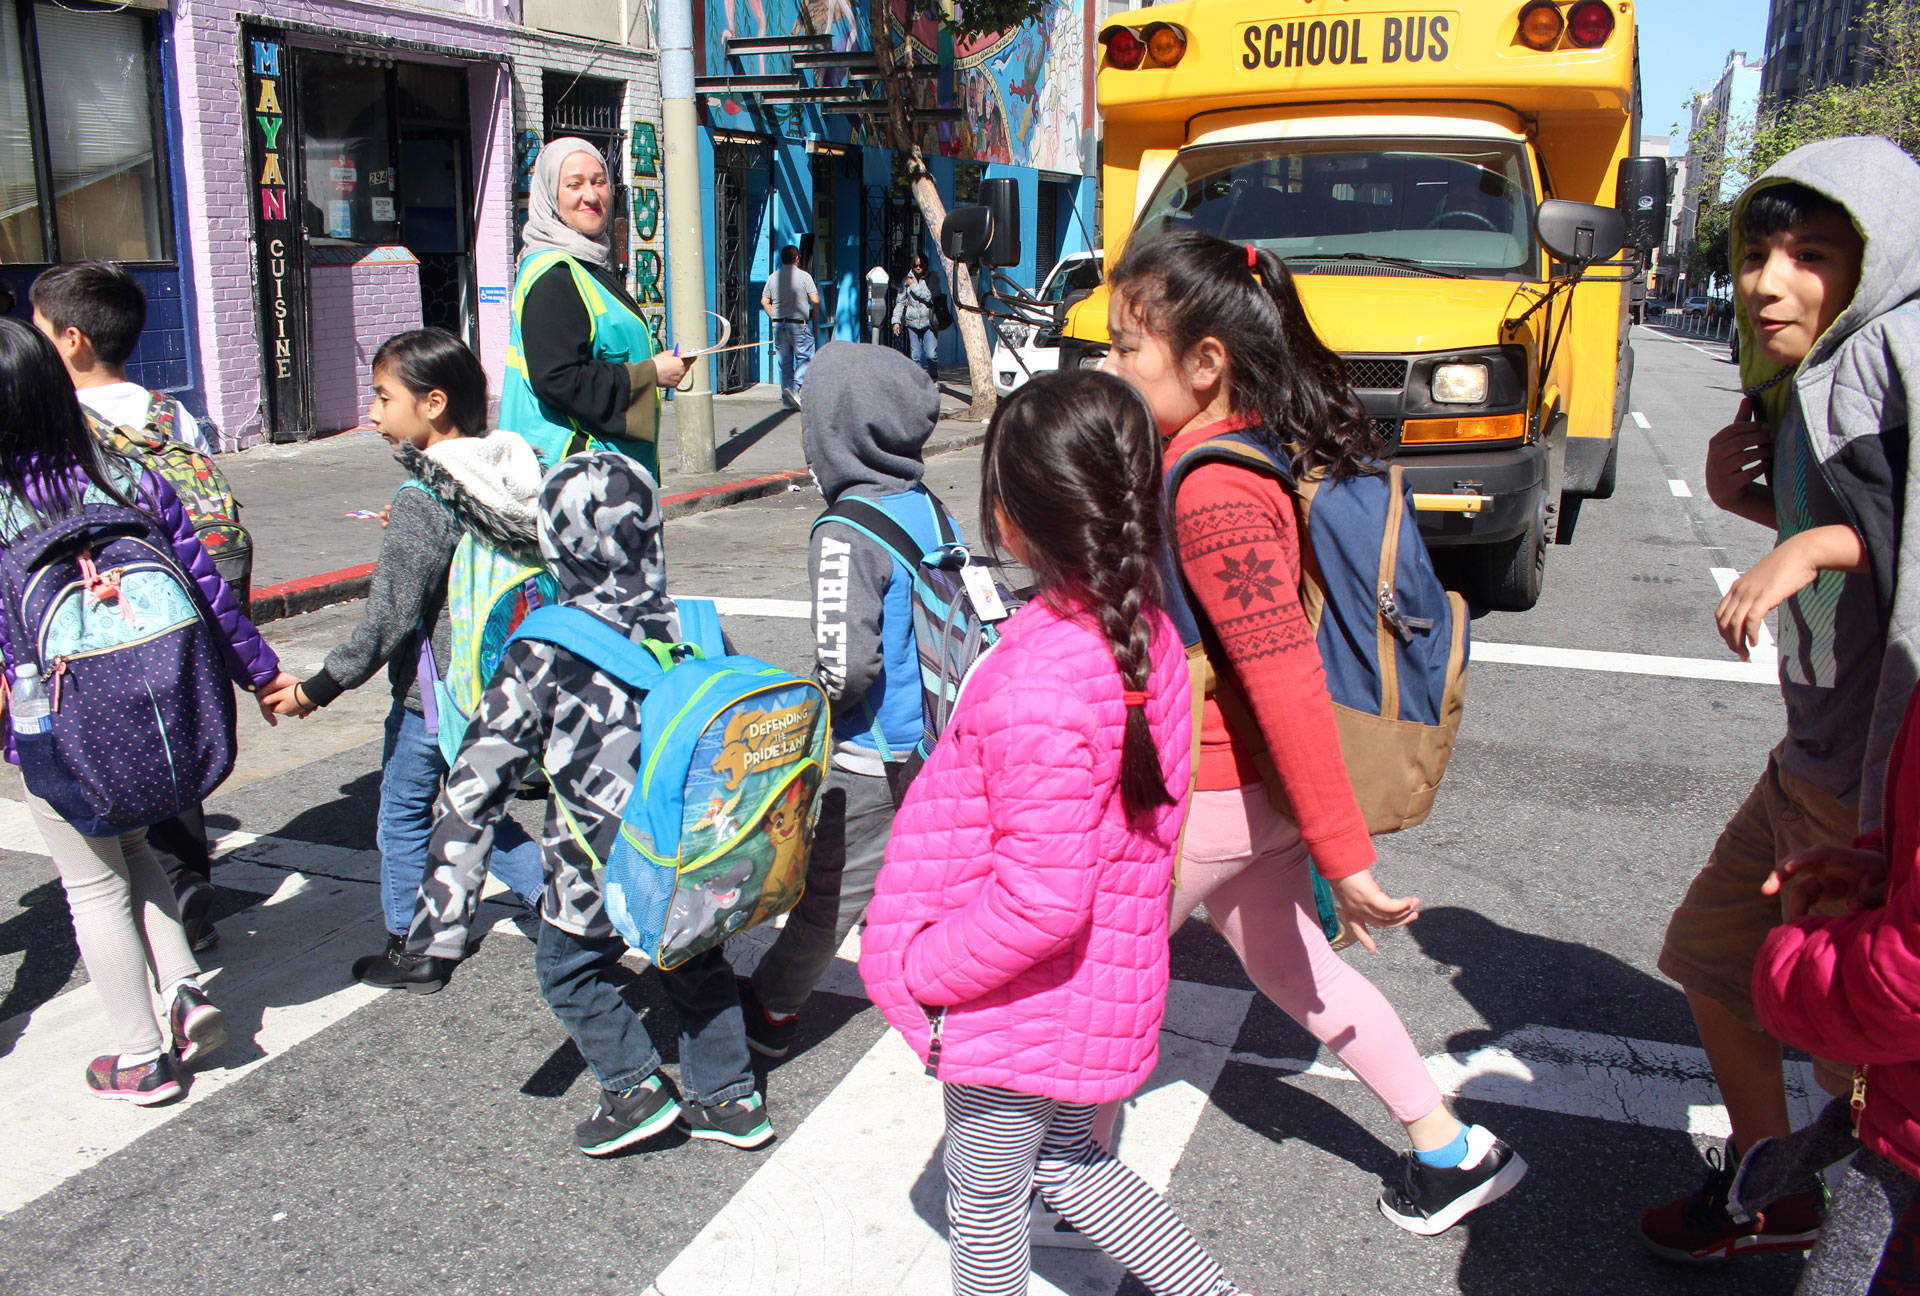 Elementary school students cross Turk Street in San Francisco as Safe Passage volunteer Tatiana Alabsi observes on April 24, 2018. Alabsi, a mom of two from Yemen, lives in affordable housing in the Tenderloin.